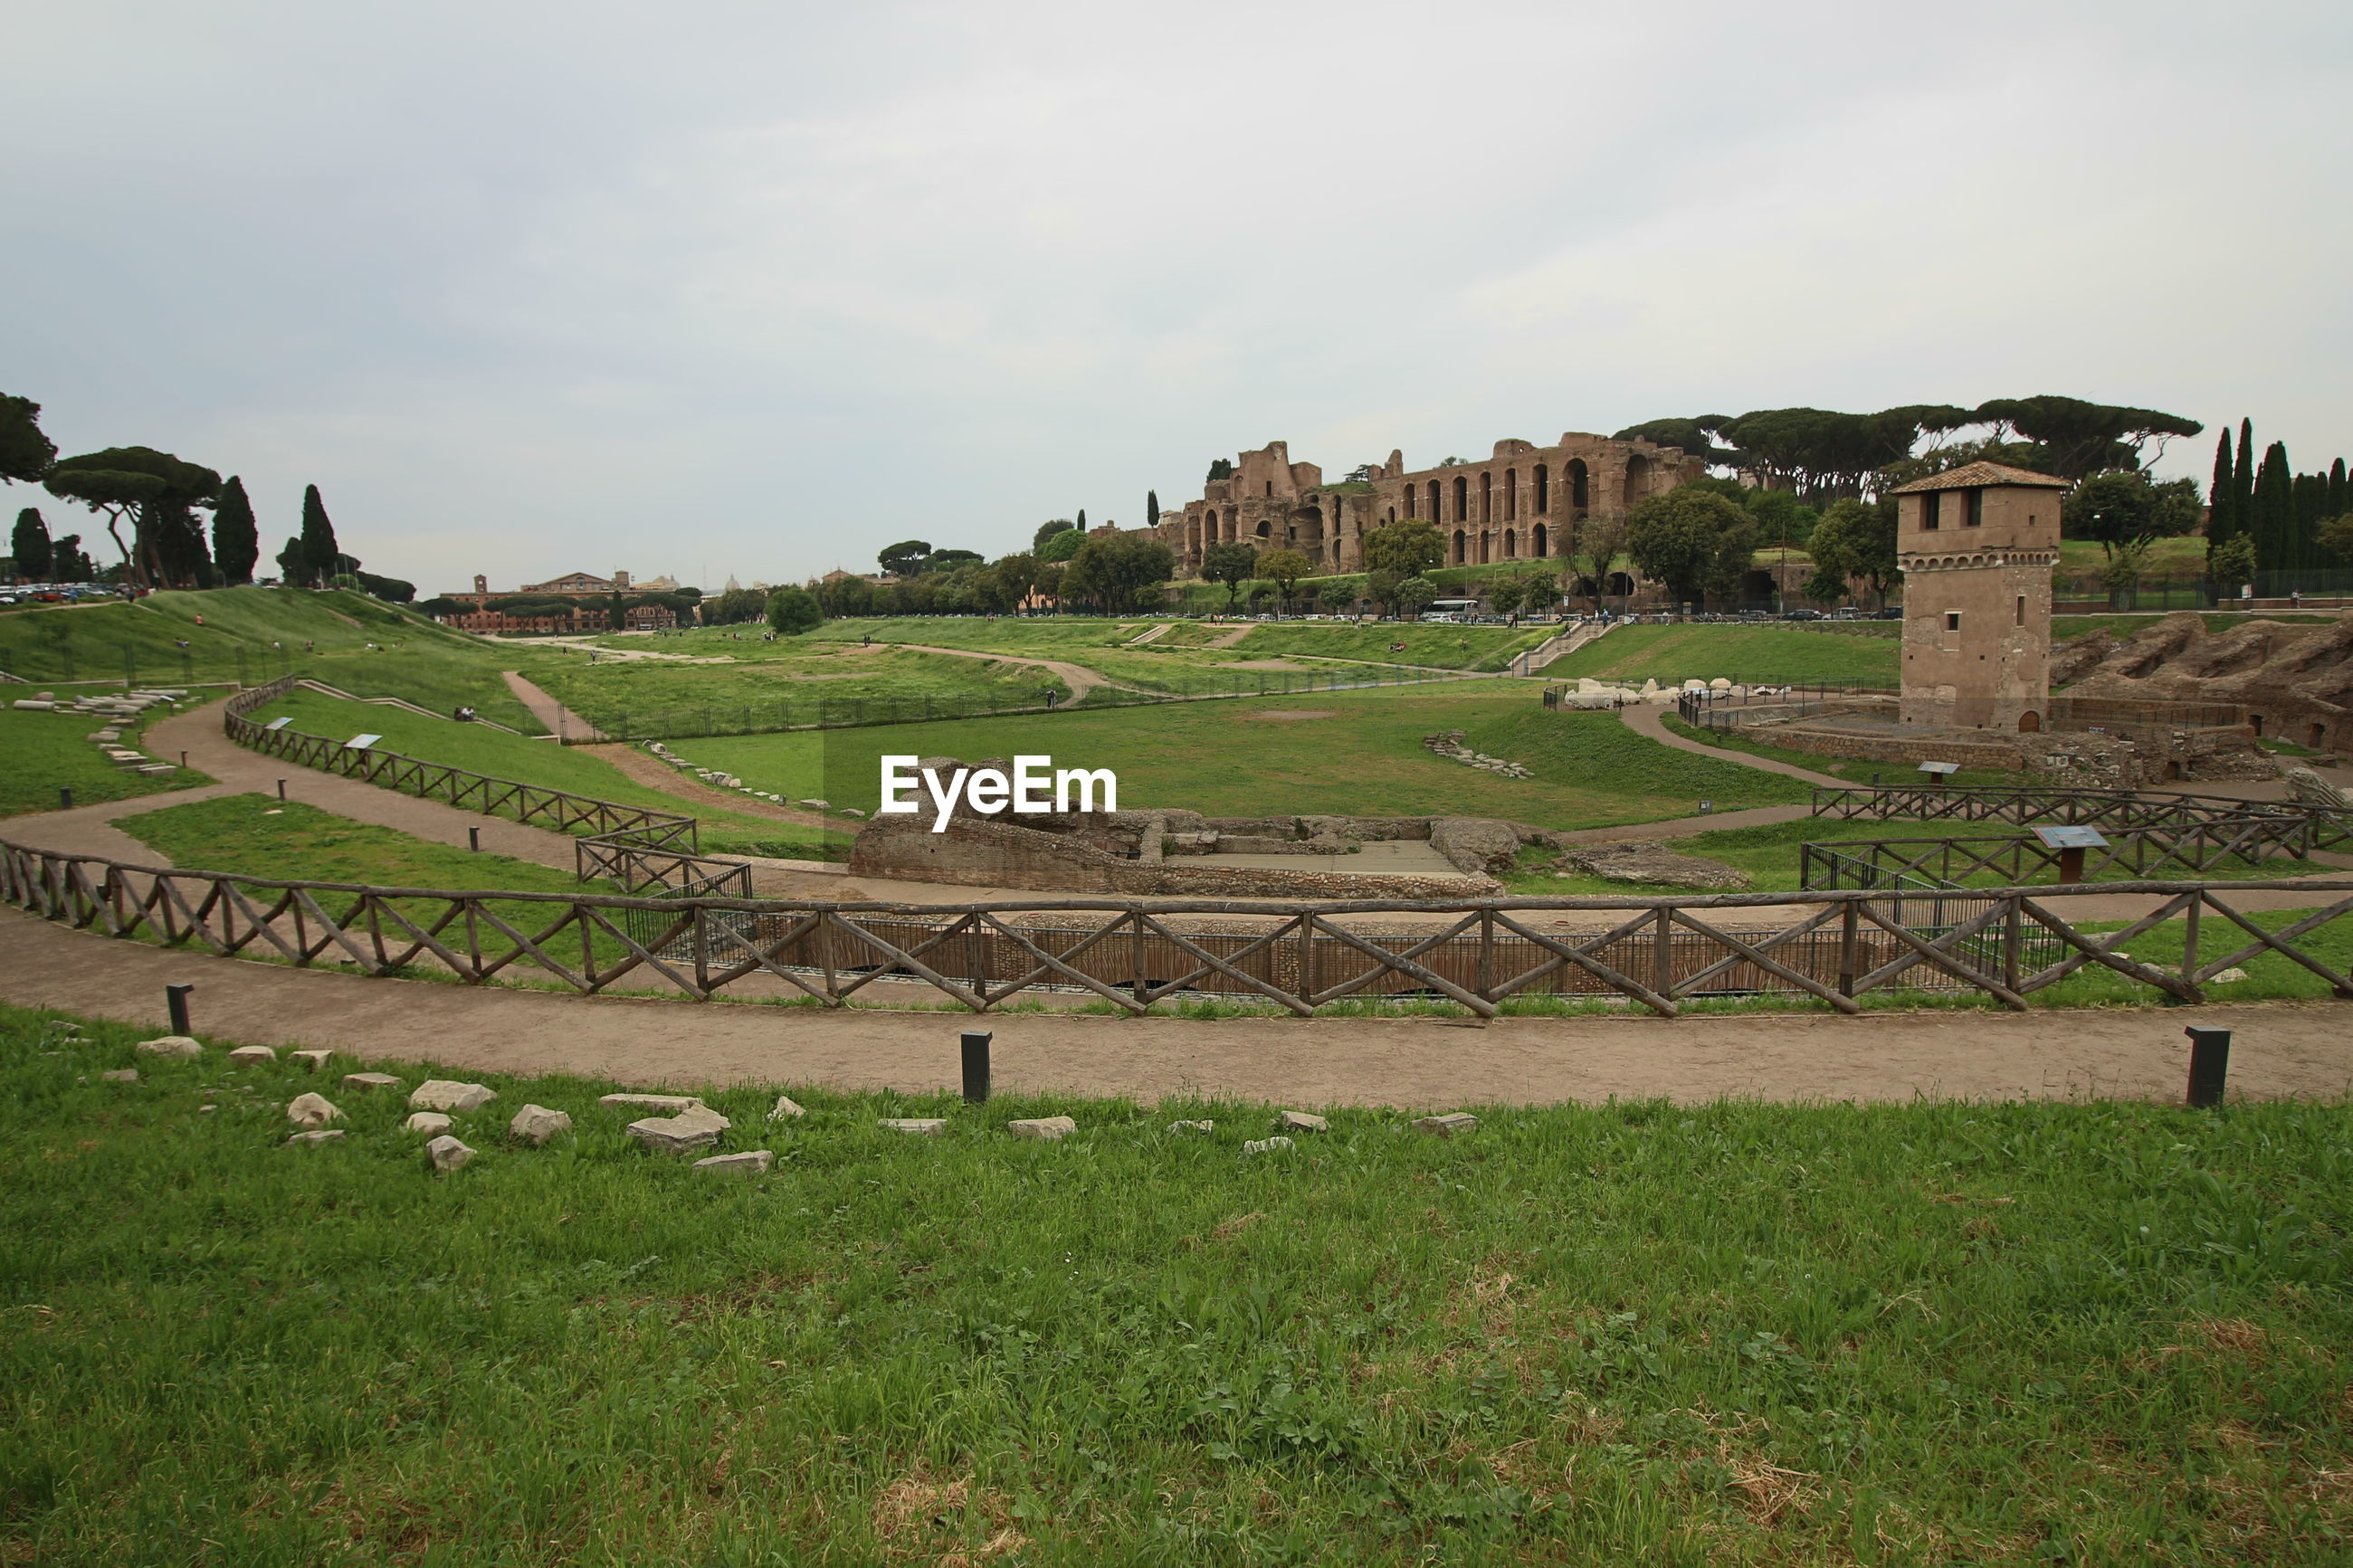 VIEW OF OLD RUIN ON FIELD